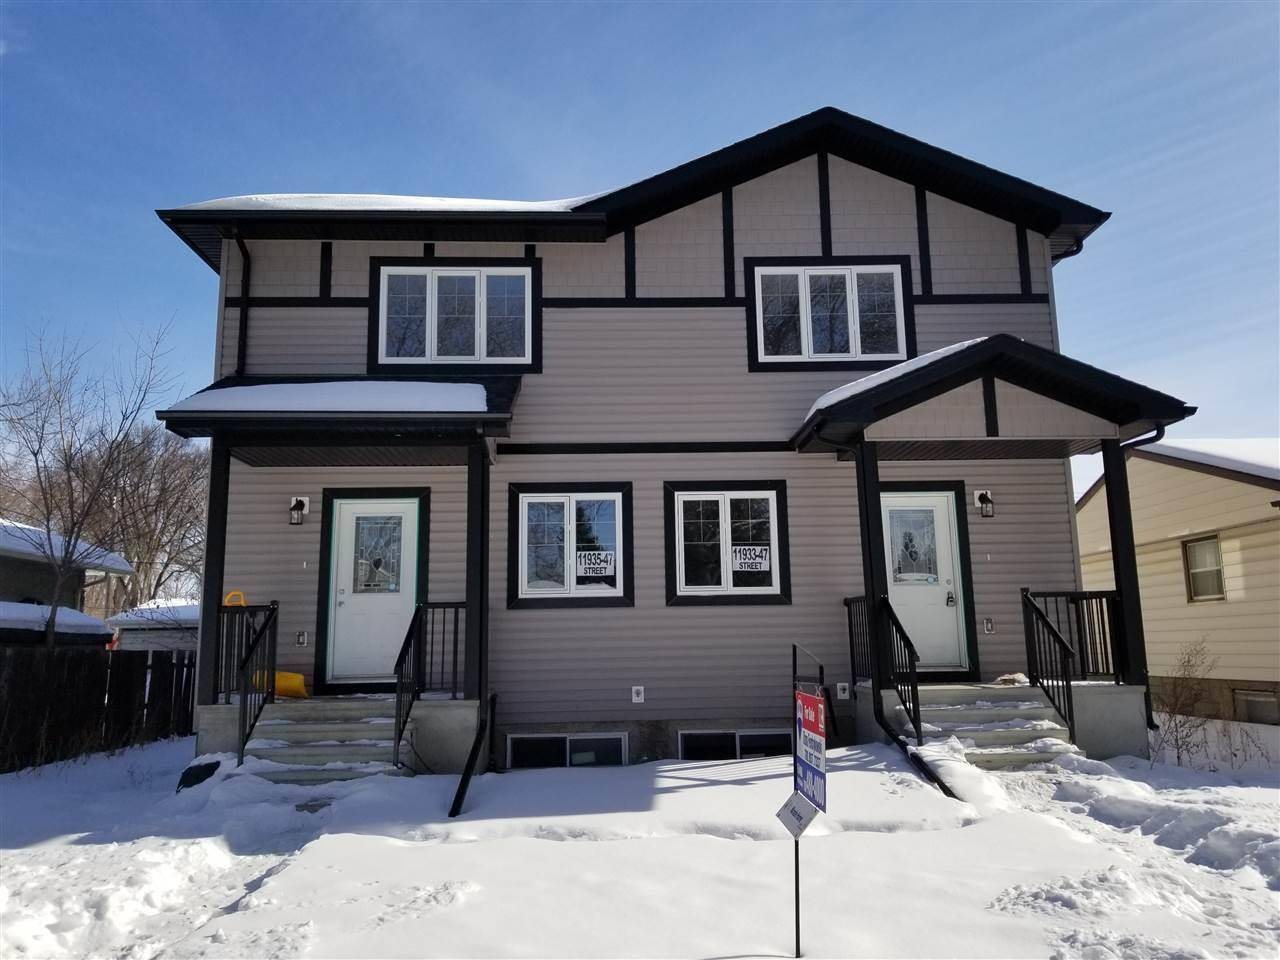 Townhouse for sale at 11935 47 St Nw Edmonton Alberta - MLS: E4185436